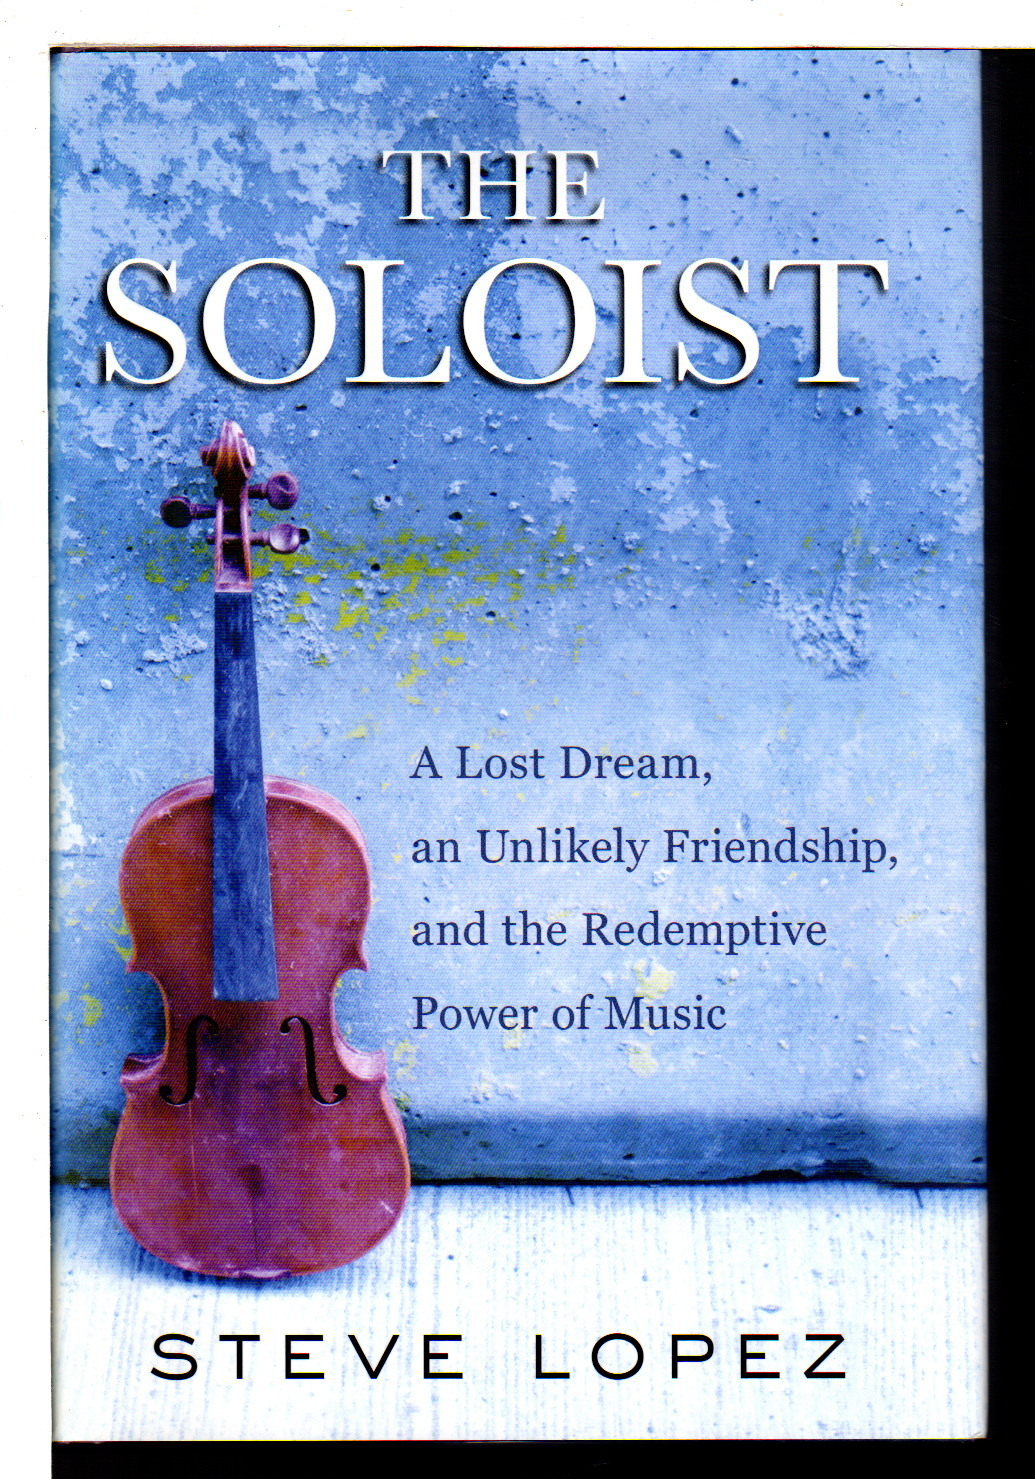 the soloist steve lopez Steve lopez is the author of several books, including the sunday macaroni club and the soloist in 2009, the soloist was made into a movie starring robert downey jr and.